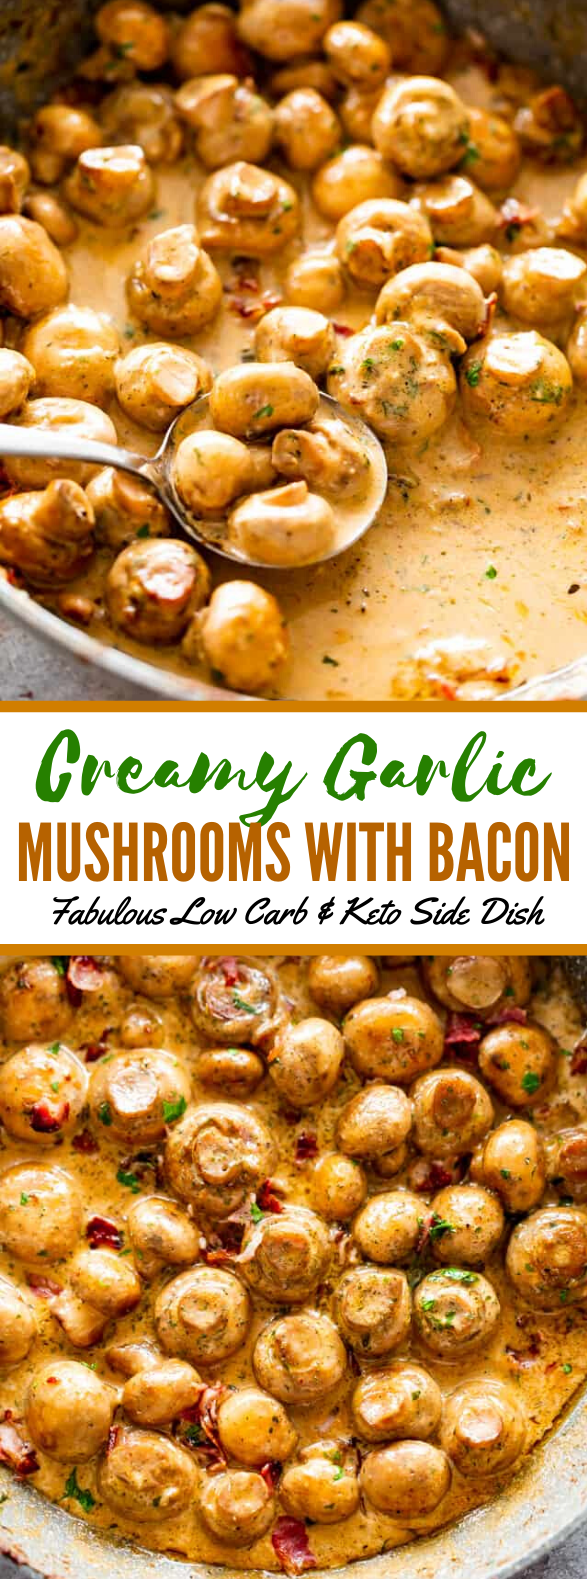 Creamy Garlic Mushrooms with Bacon #lowcarb #keto